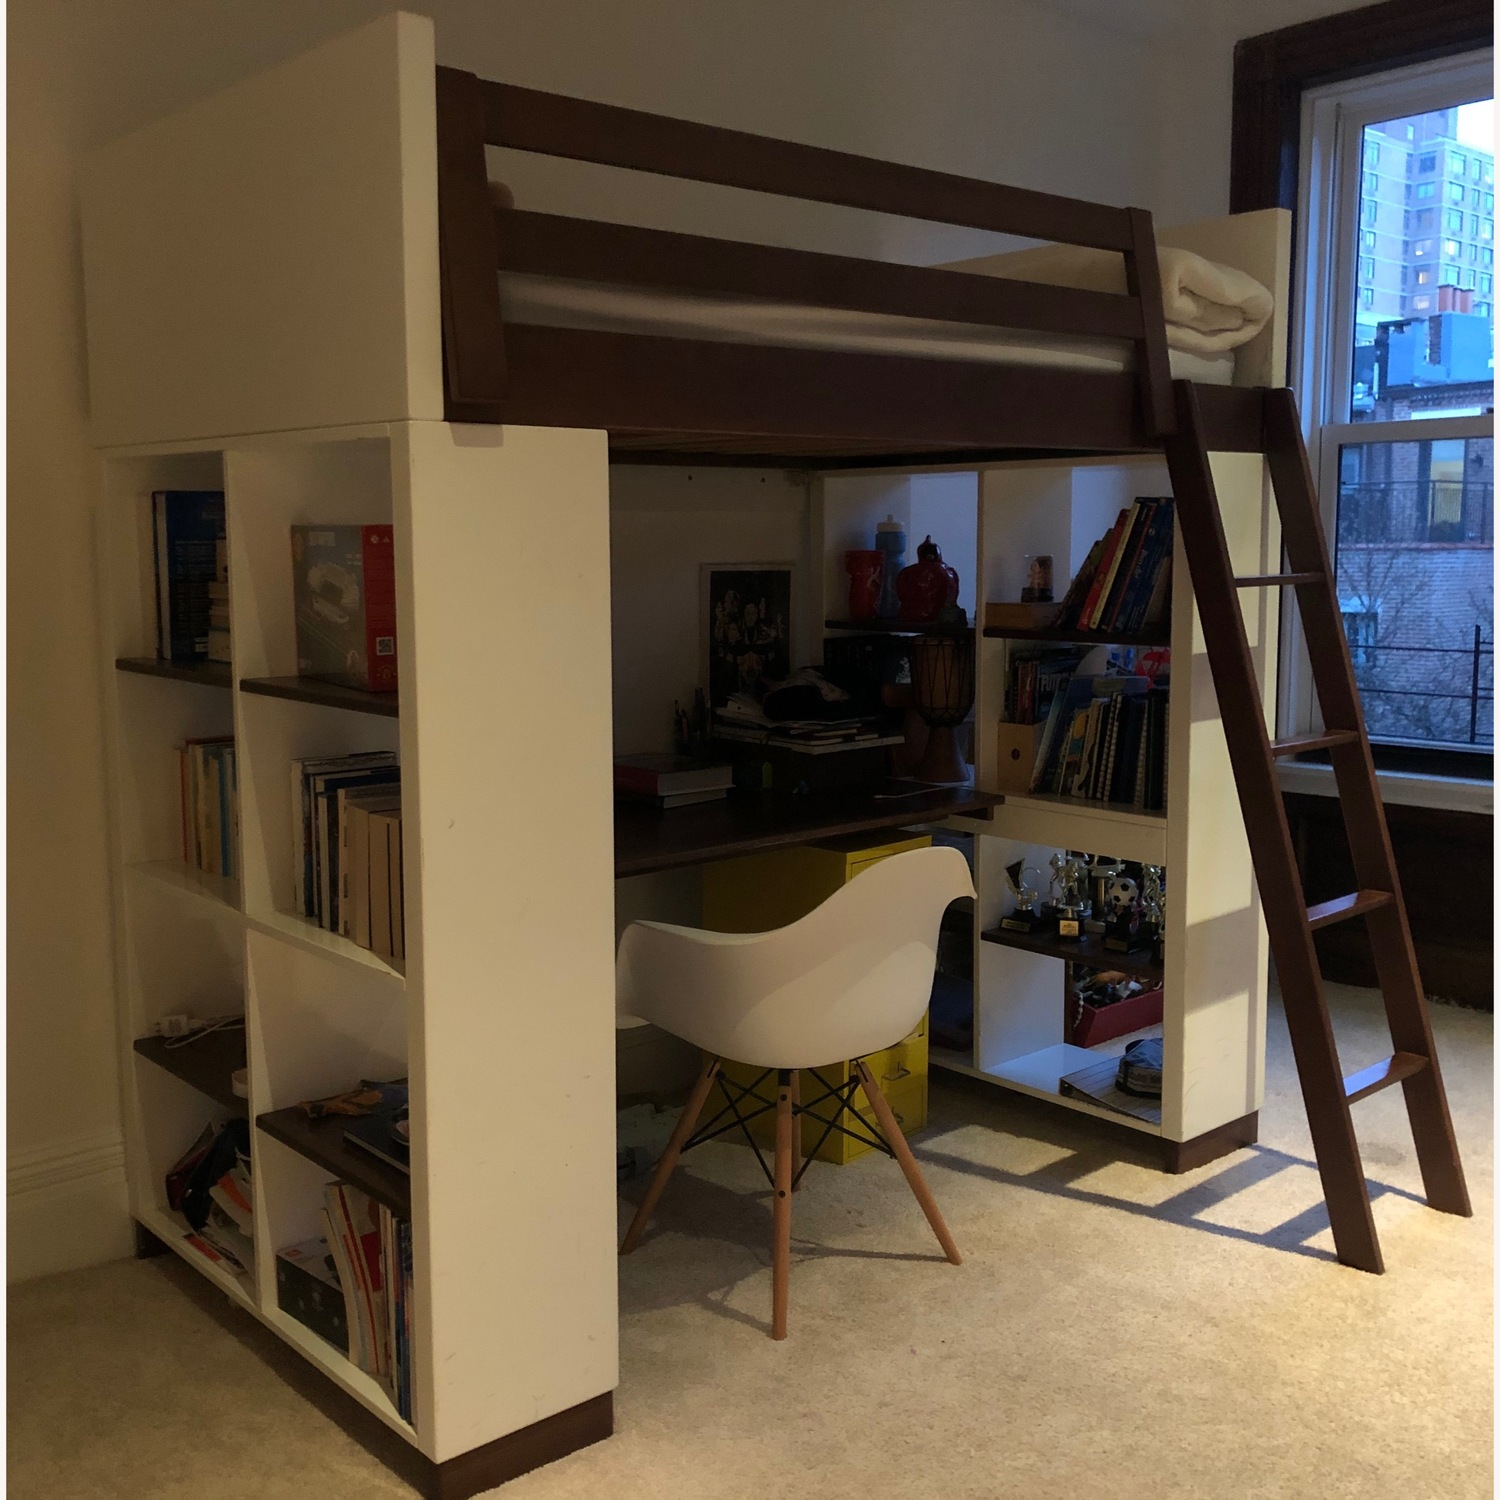 Room & Board Loft Bed with desk and two end bookcases